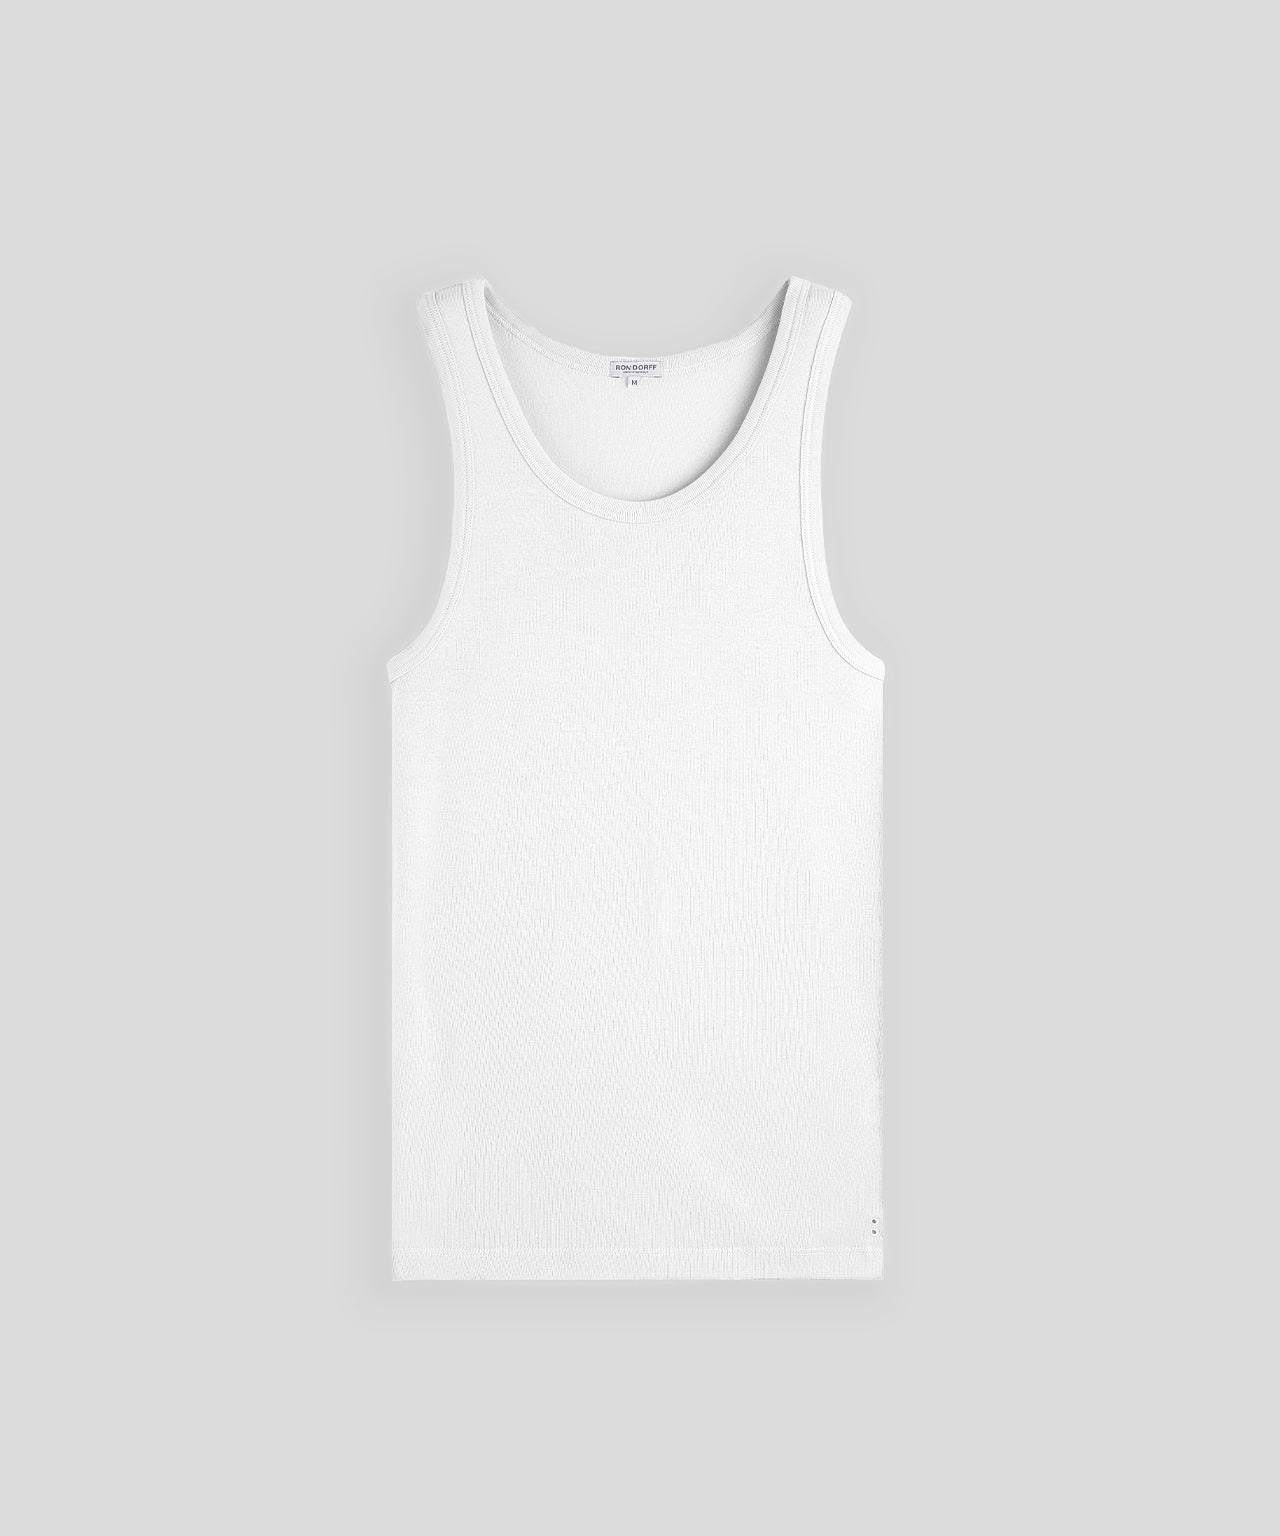 Underwear Tank Top - white